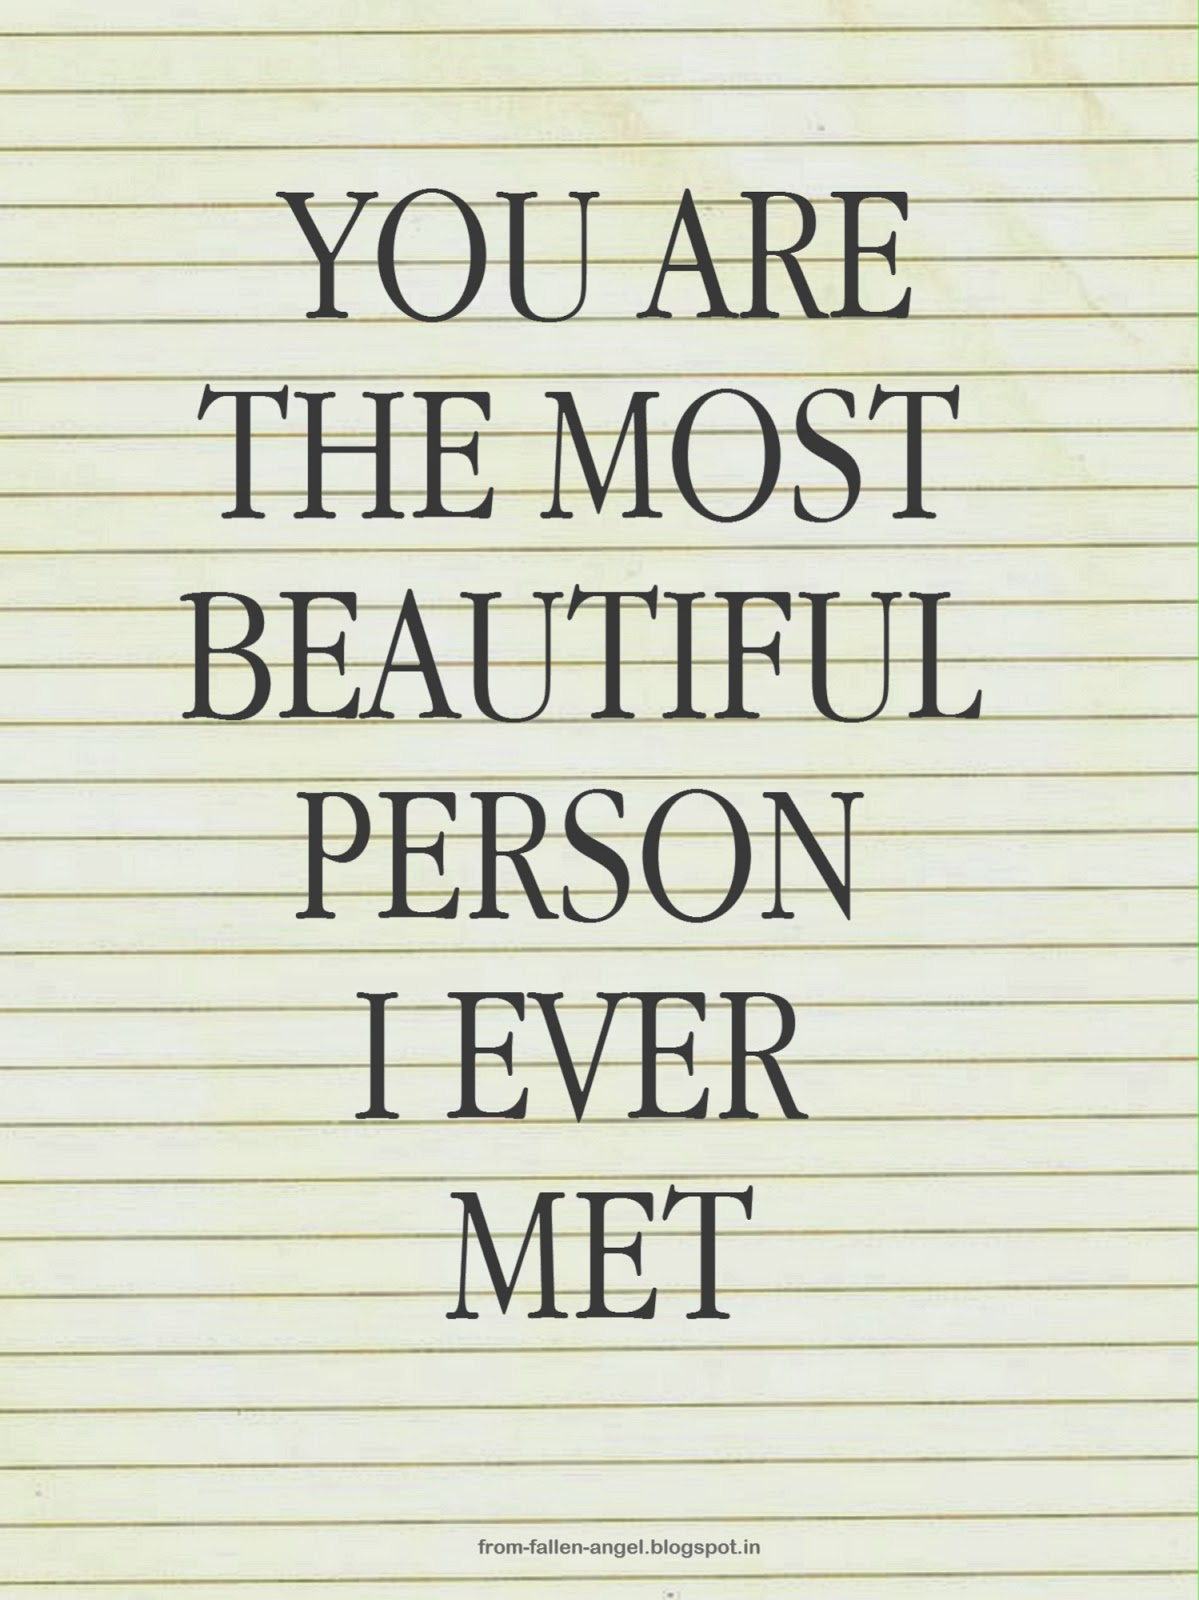 You are the most beautiful person I ever met